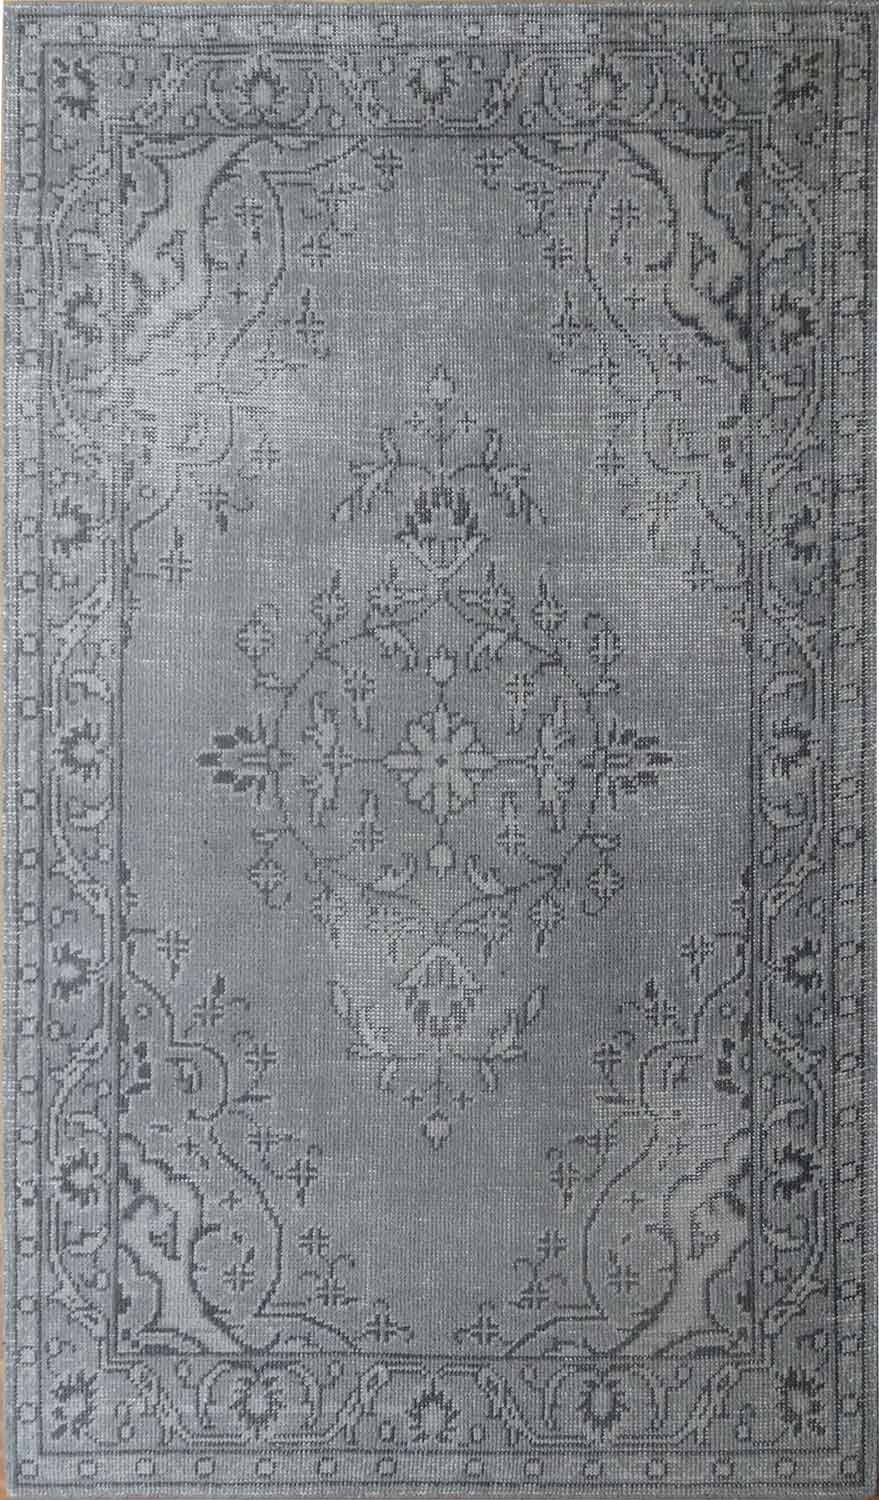 Ren-Wil RCHA-01-810 Chambray Rug - Grey